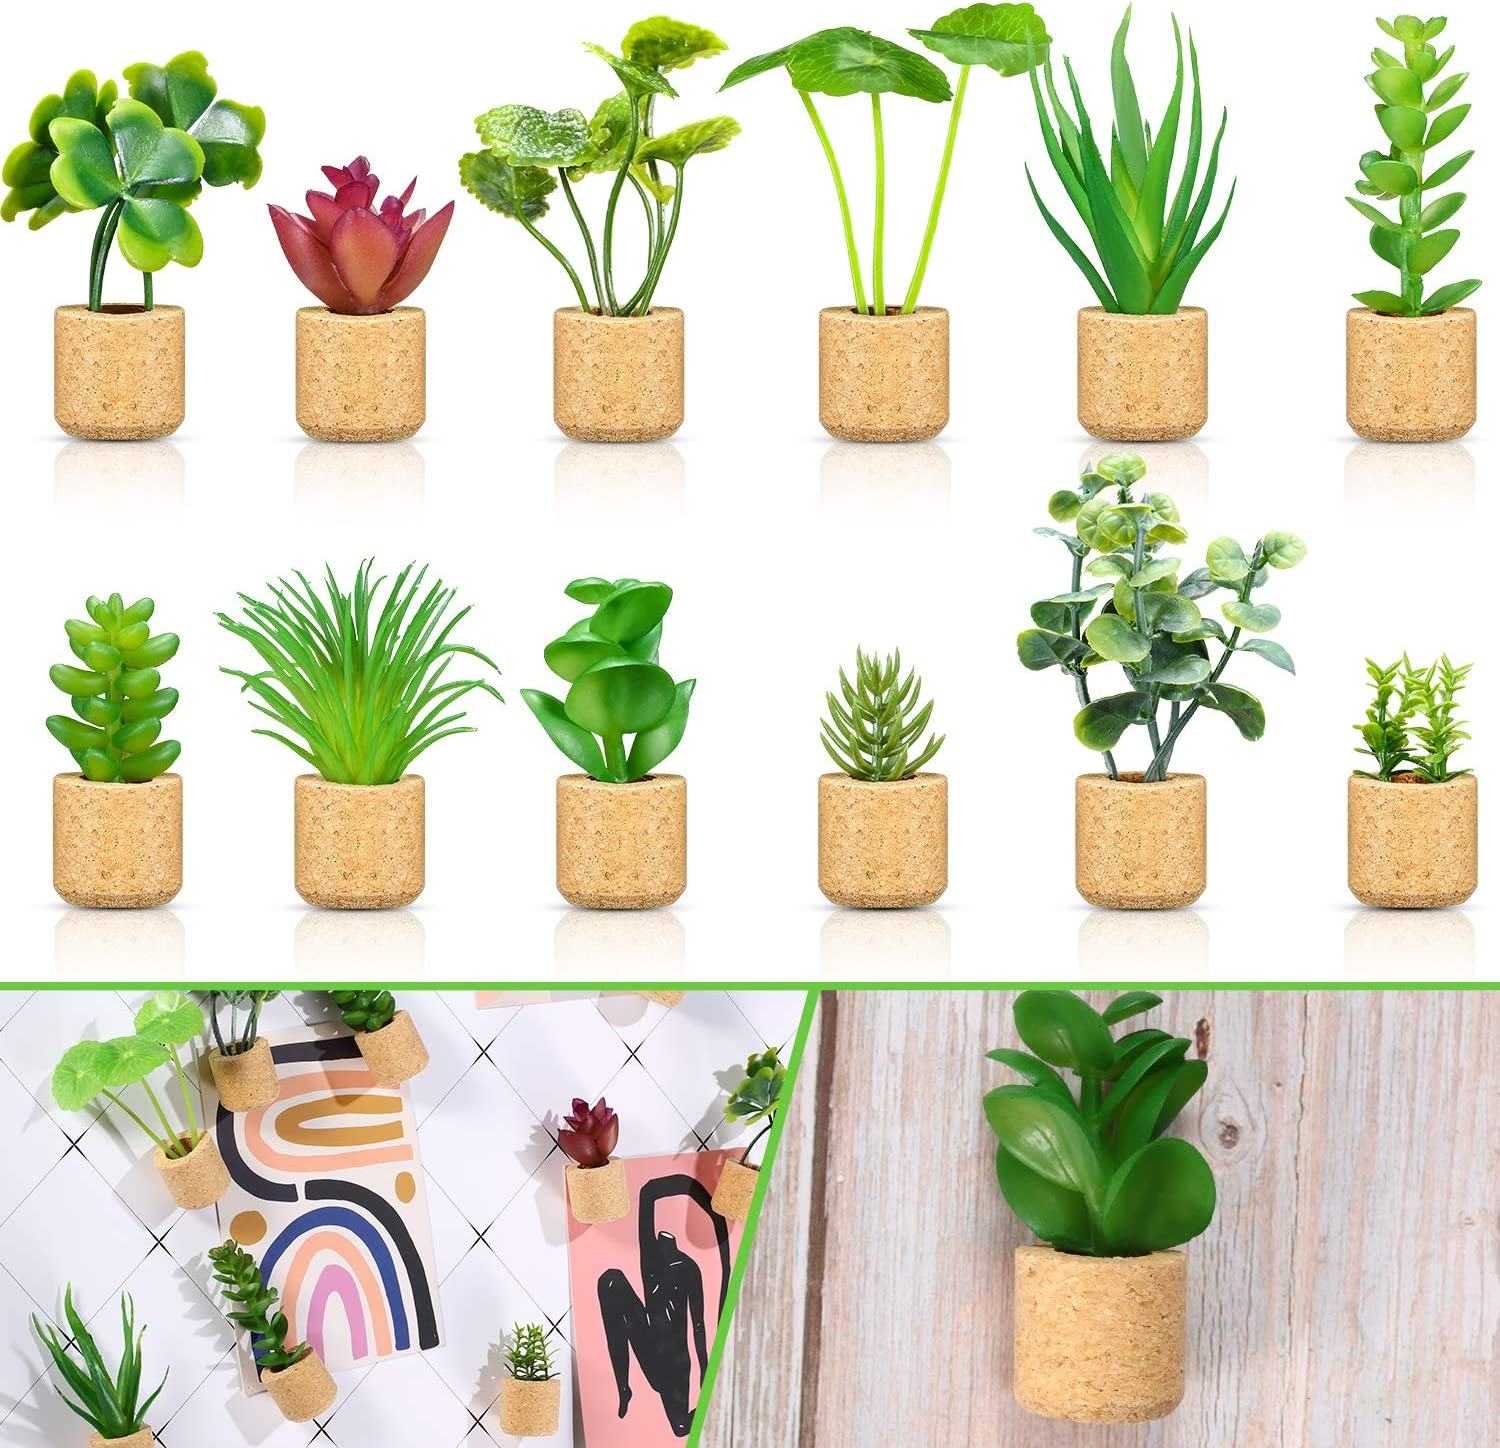 BBTO 12 Pcs Mini Artificial Succulent Plants Refrigerator Magnets for Shelf Kitchen Counter Office Decor Tiny Miniature Desk Plant Decoration (Wall Hanging or Lay Flat)